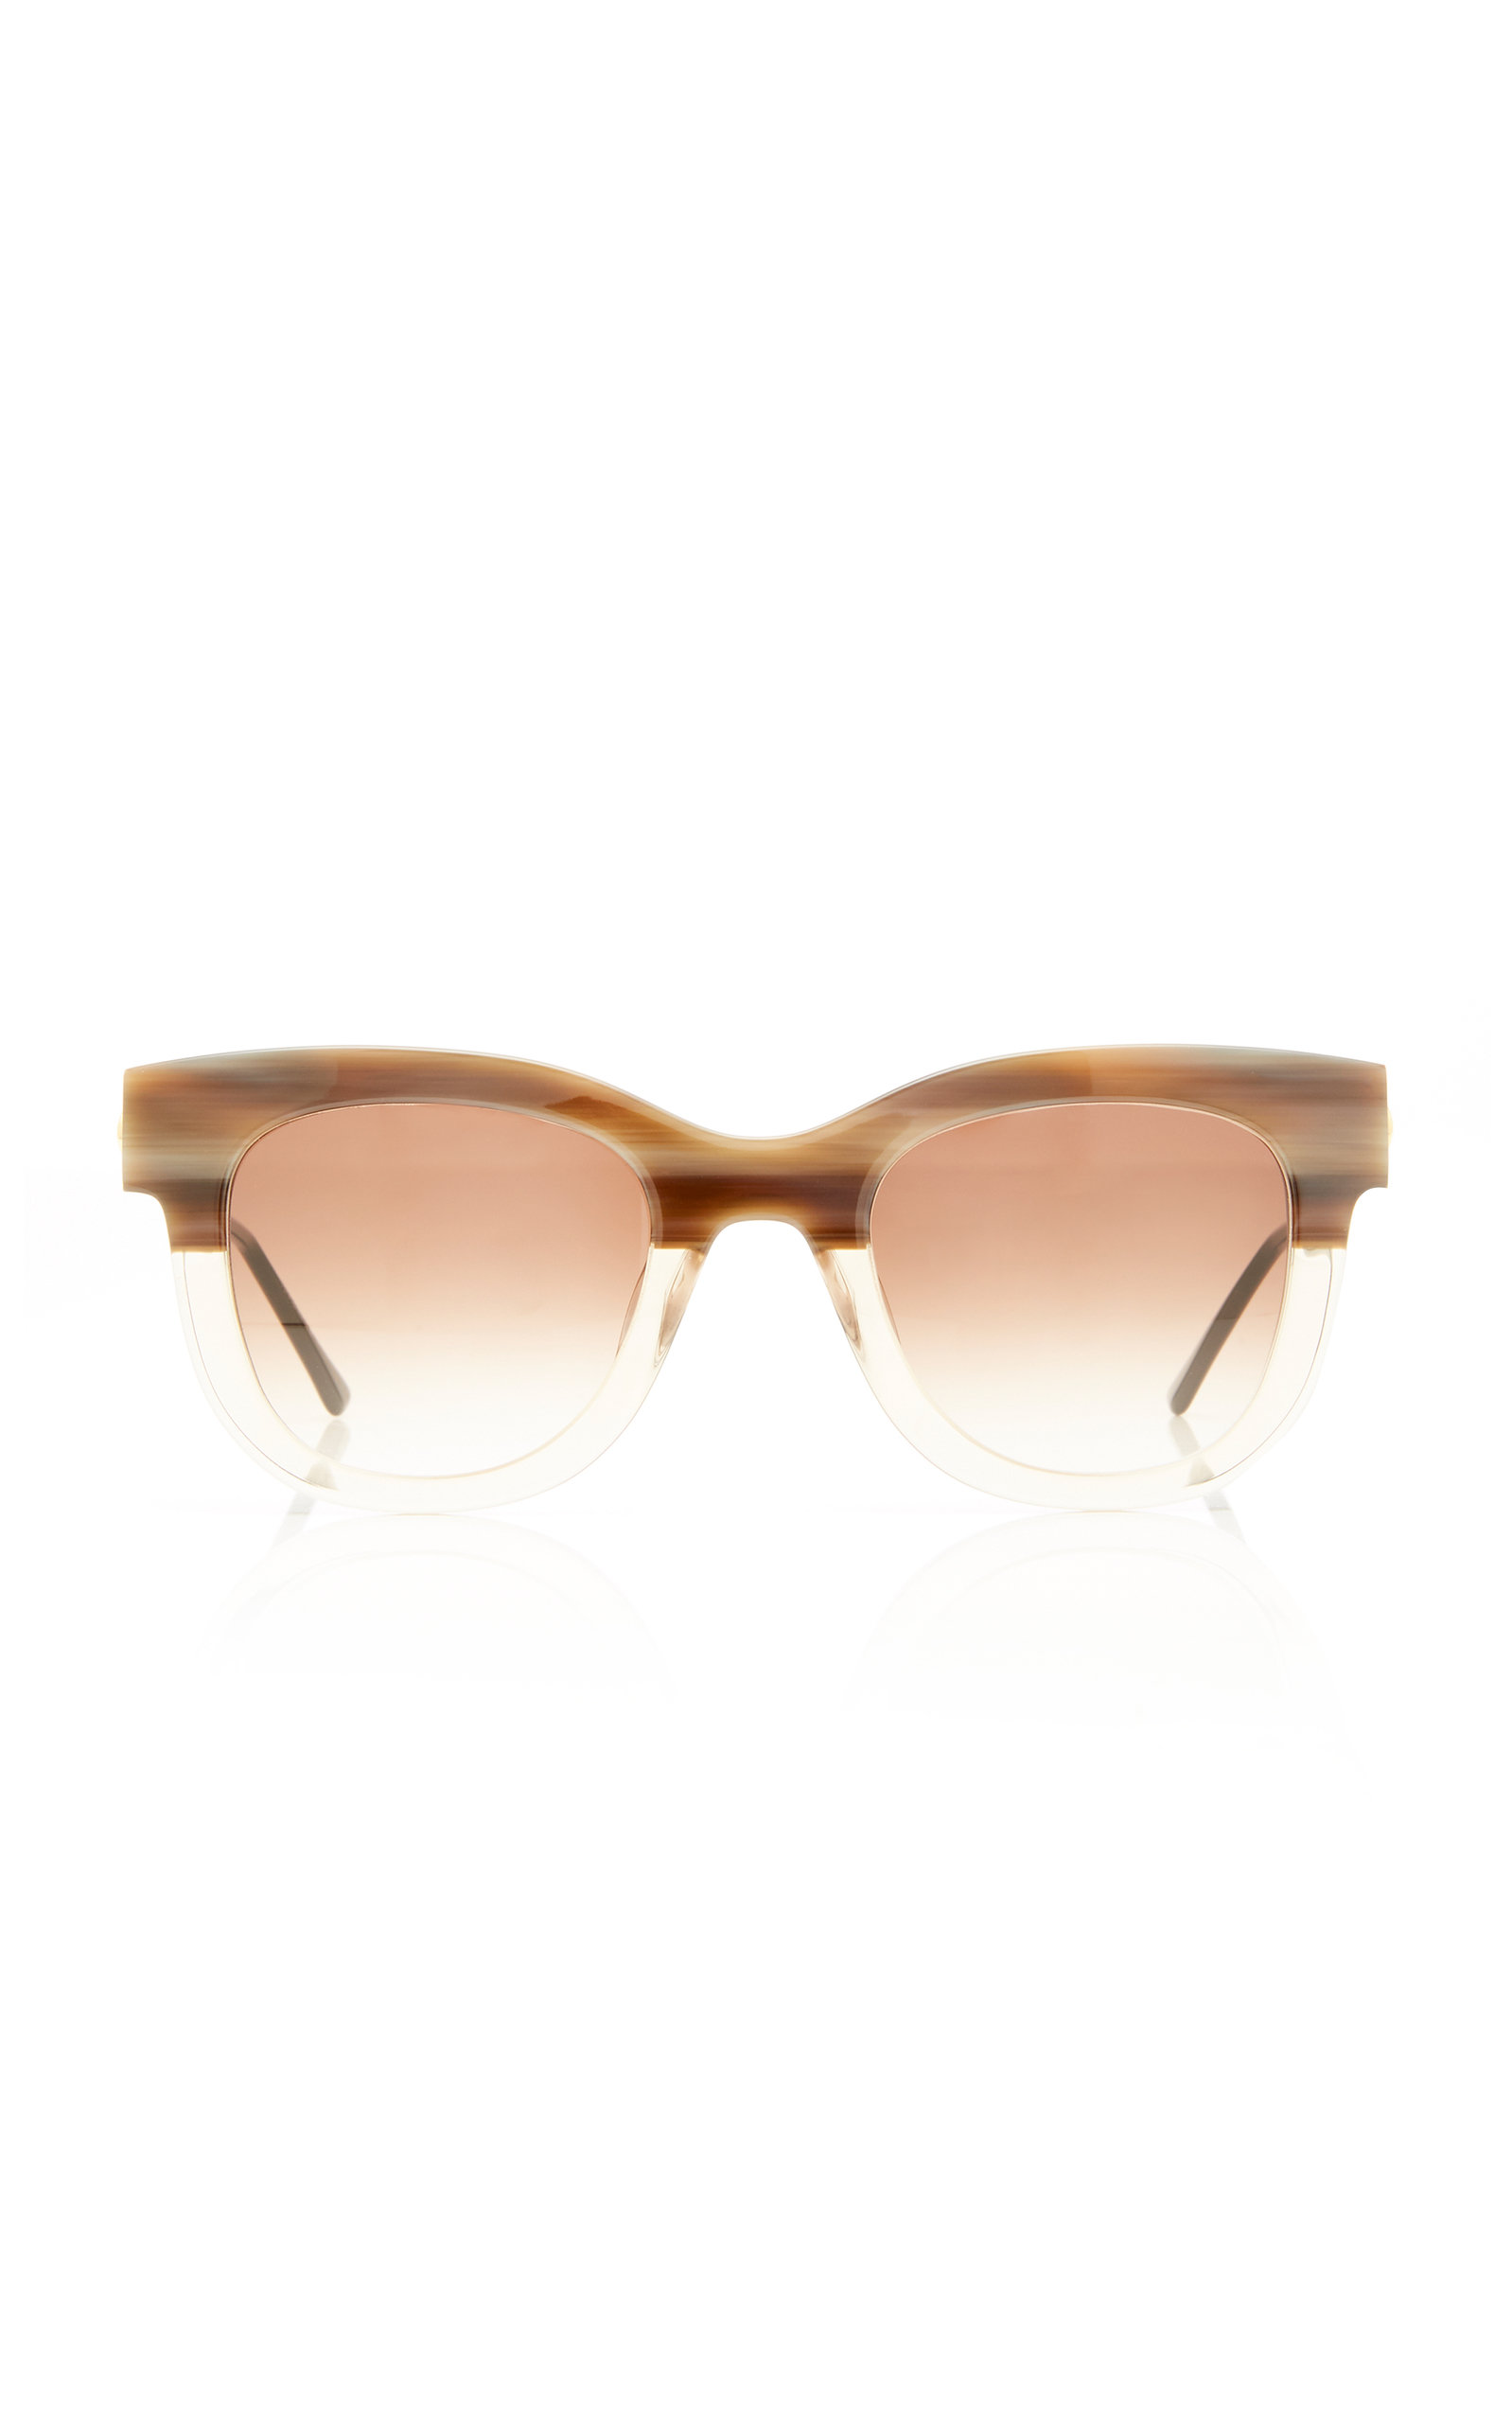 dce7e39e35 SEXXXY 341 Two-Tone Cat-Eye Sunglasses by Thierry Lasry